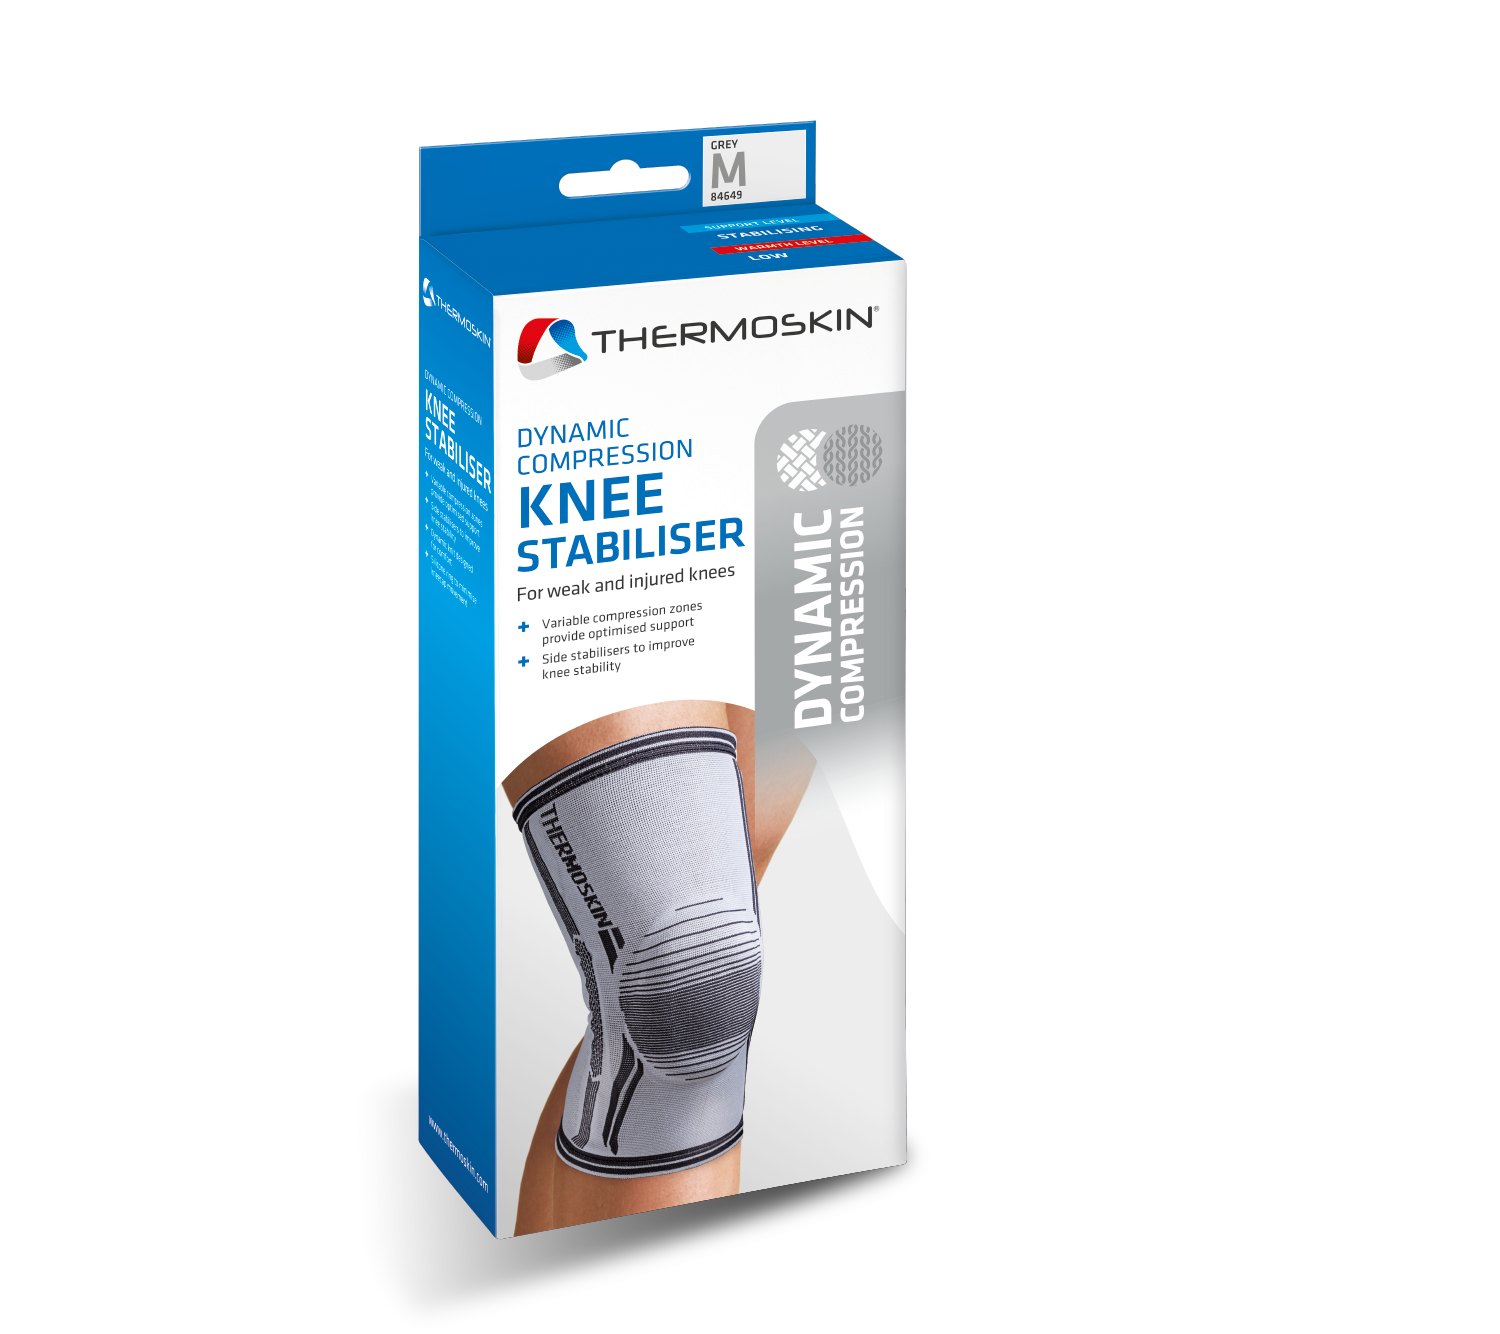 Thermoskin Dynamic Compression Knee Stabiliser - 8*649